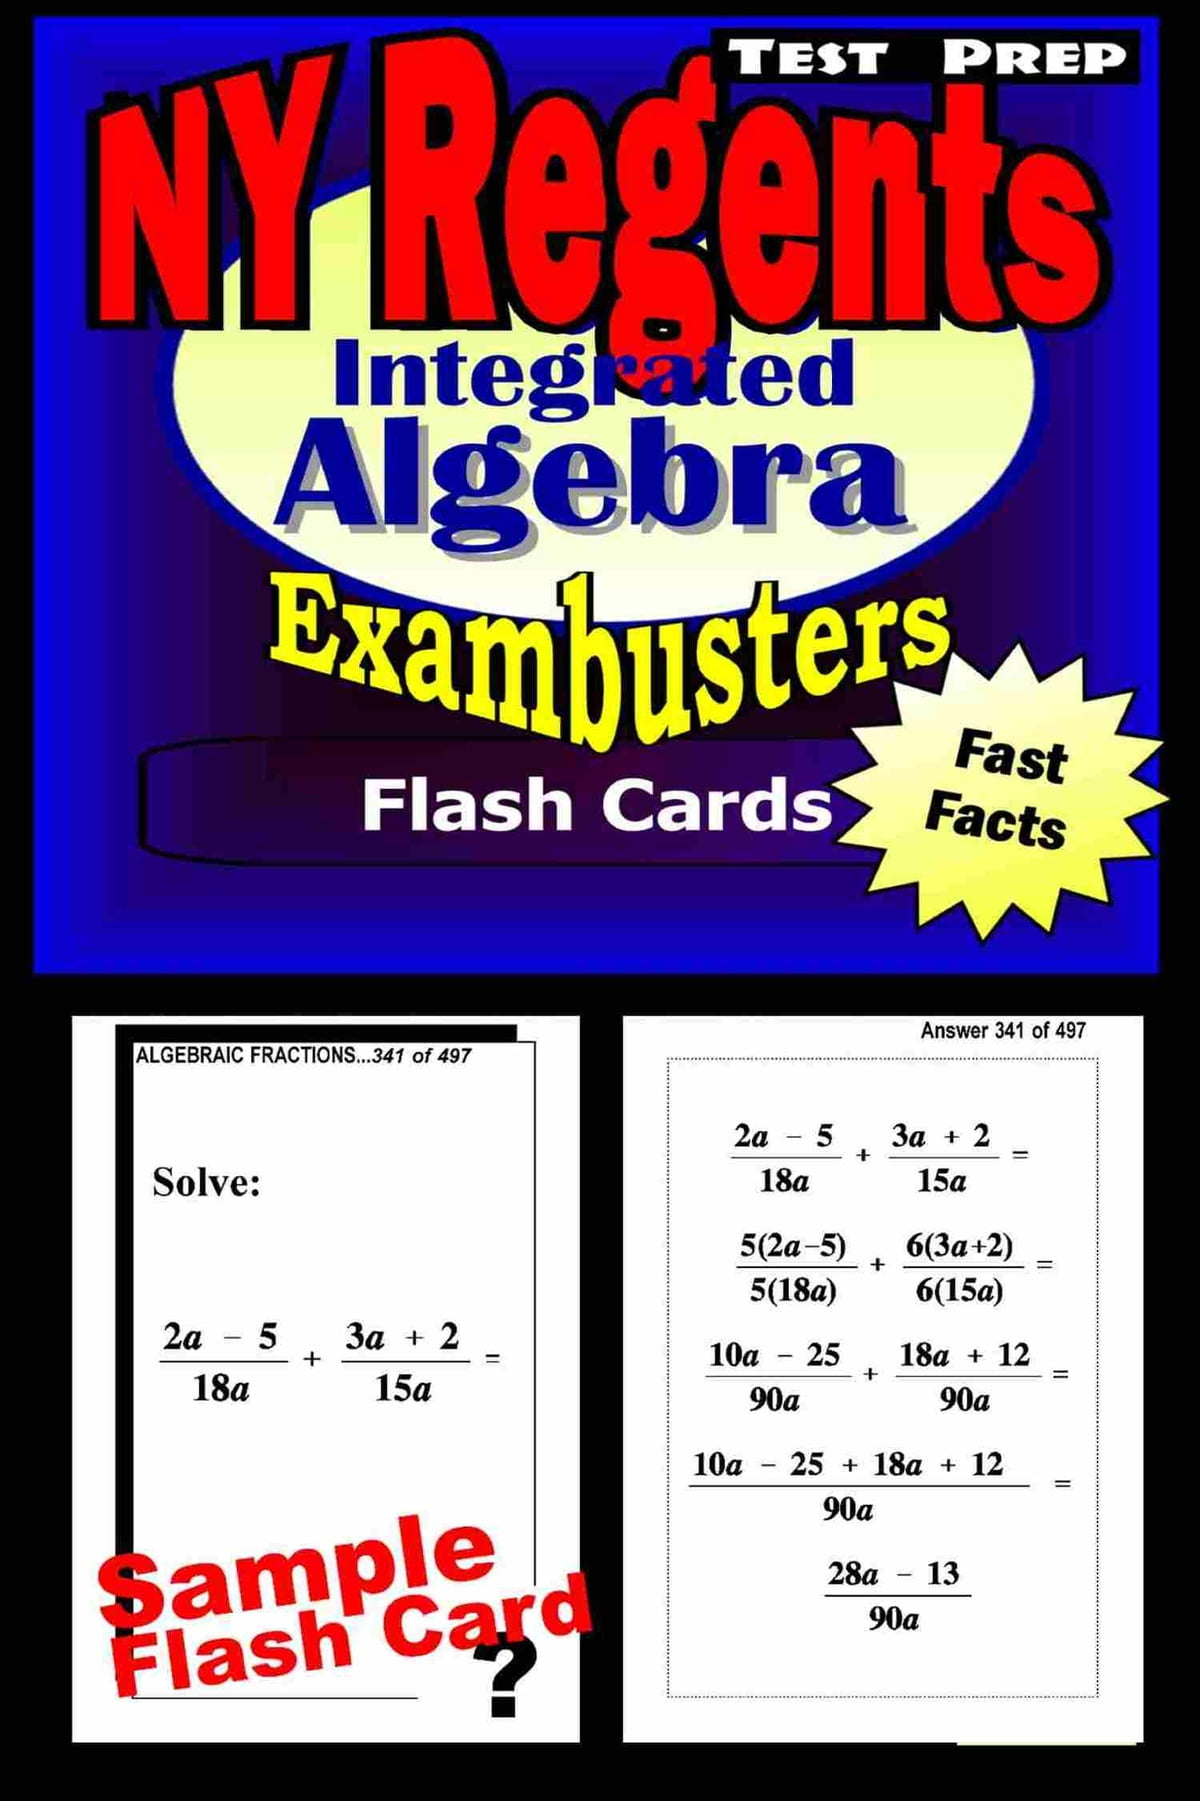 NY Regents Integrated Algebra Test Prep Review--Exambusters Flashcards  ebook by Regents Exambusters - Rakuten Kobo